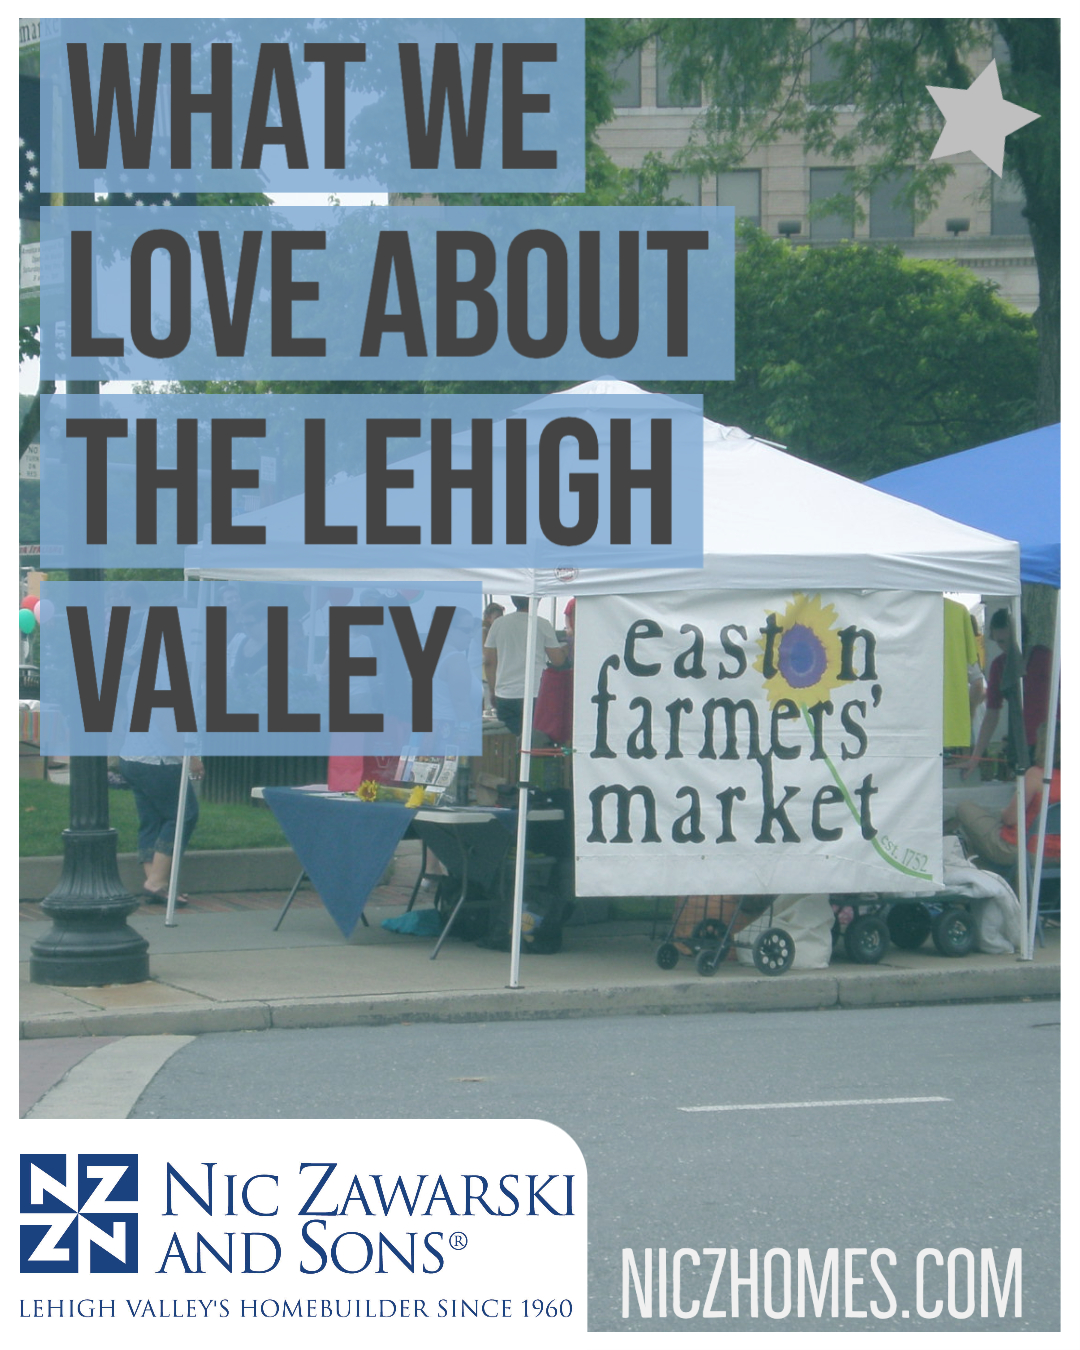 What We Love About Living In The Lehigh Valley: Easton Farmers' Market